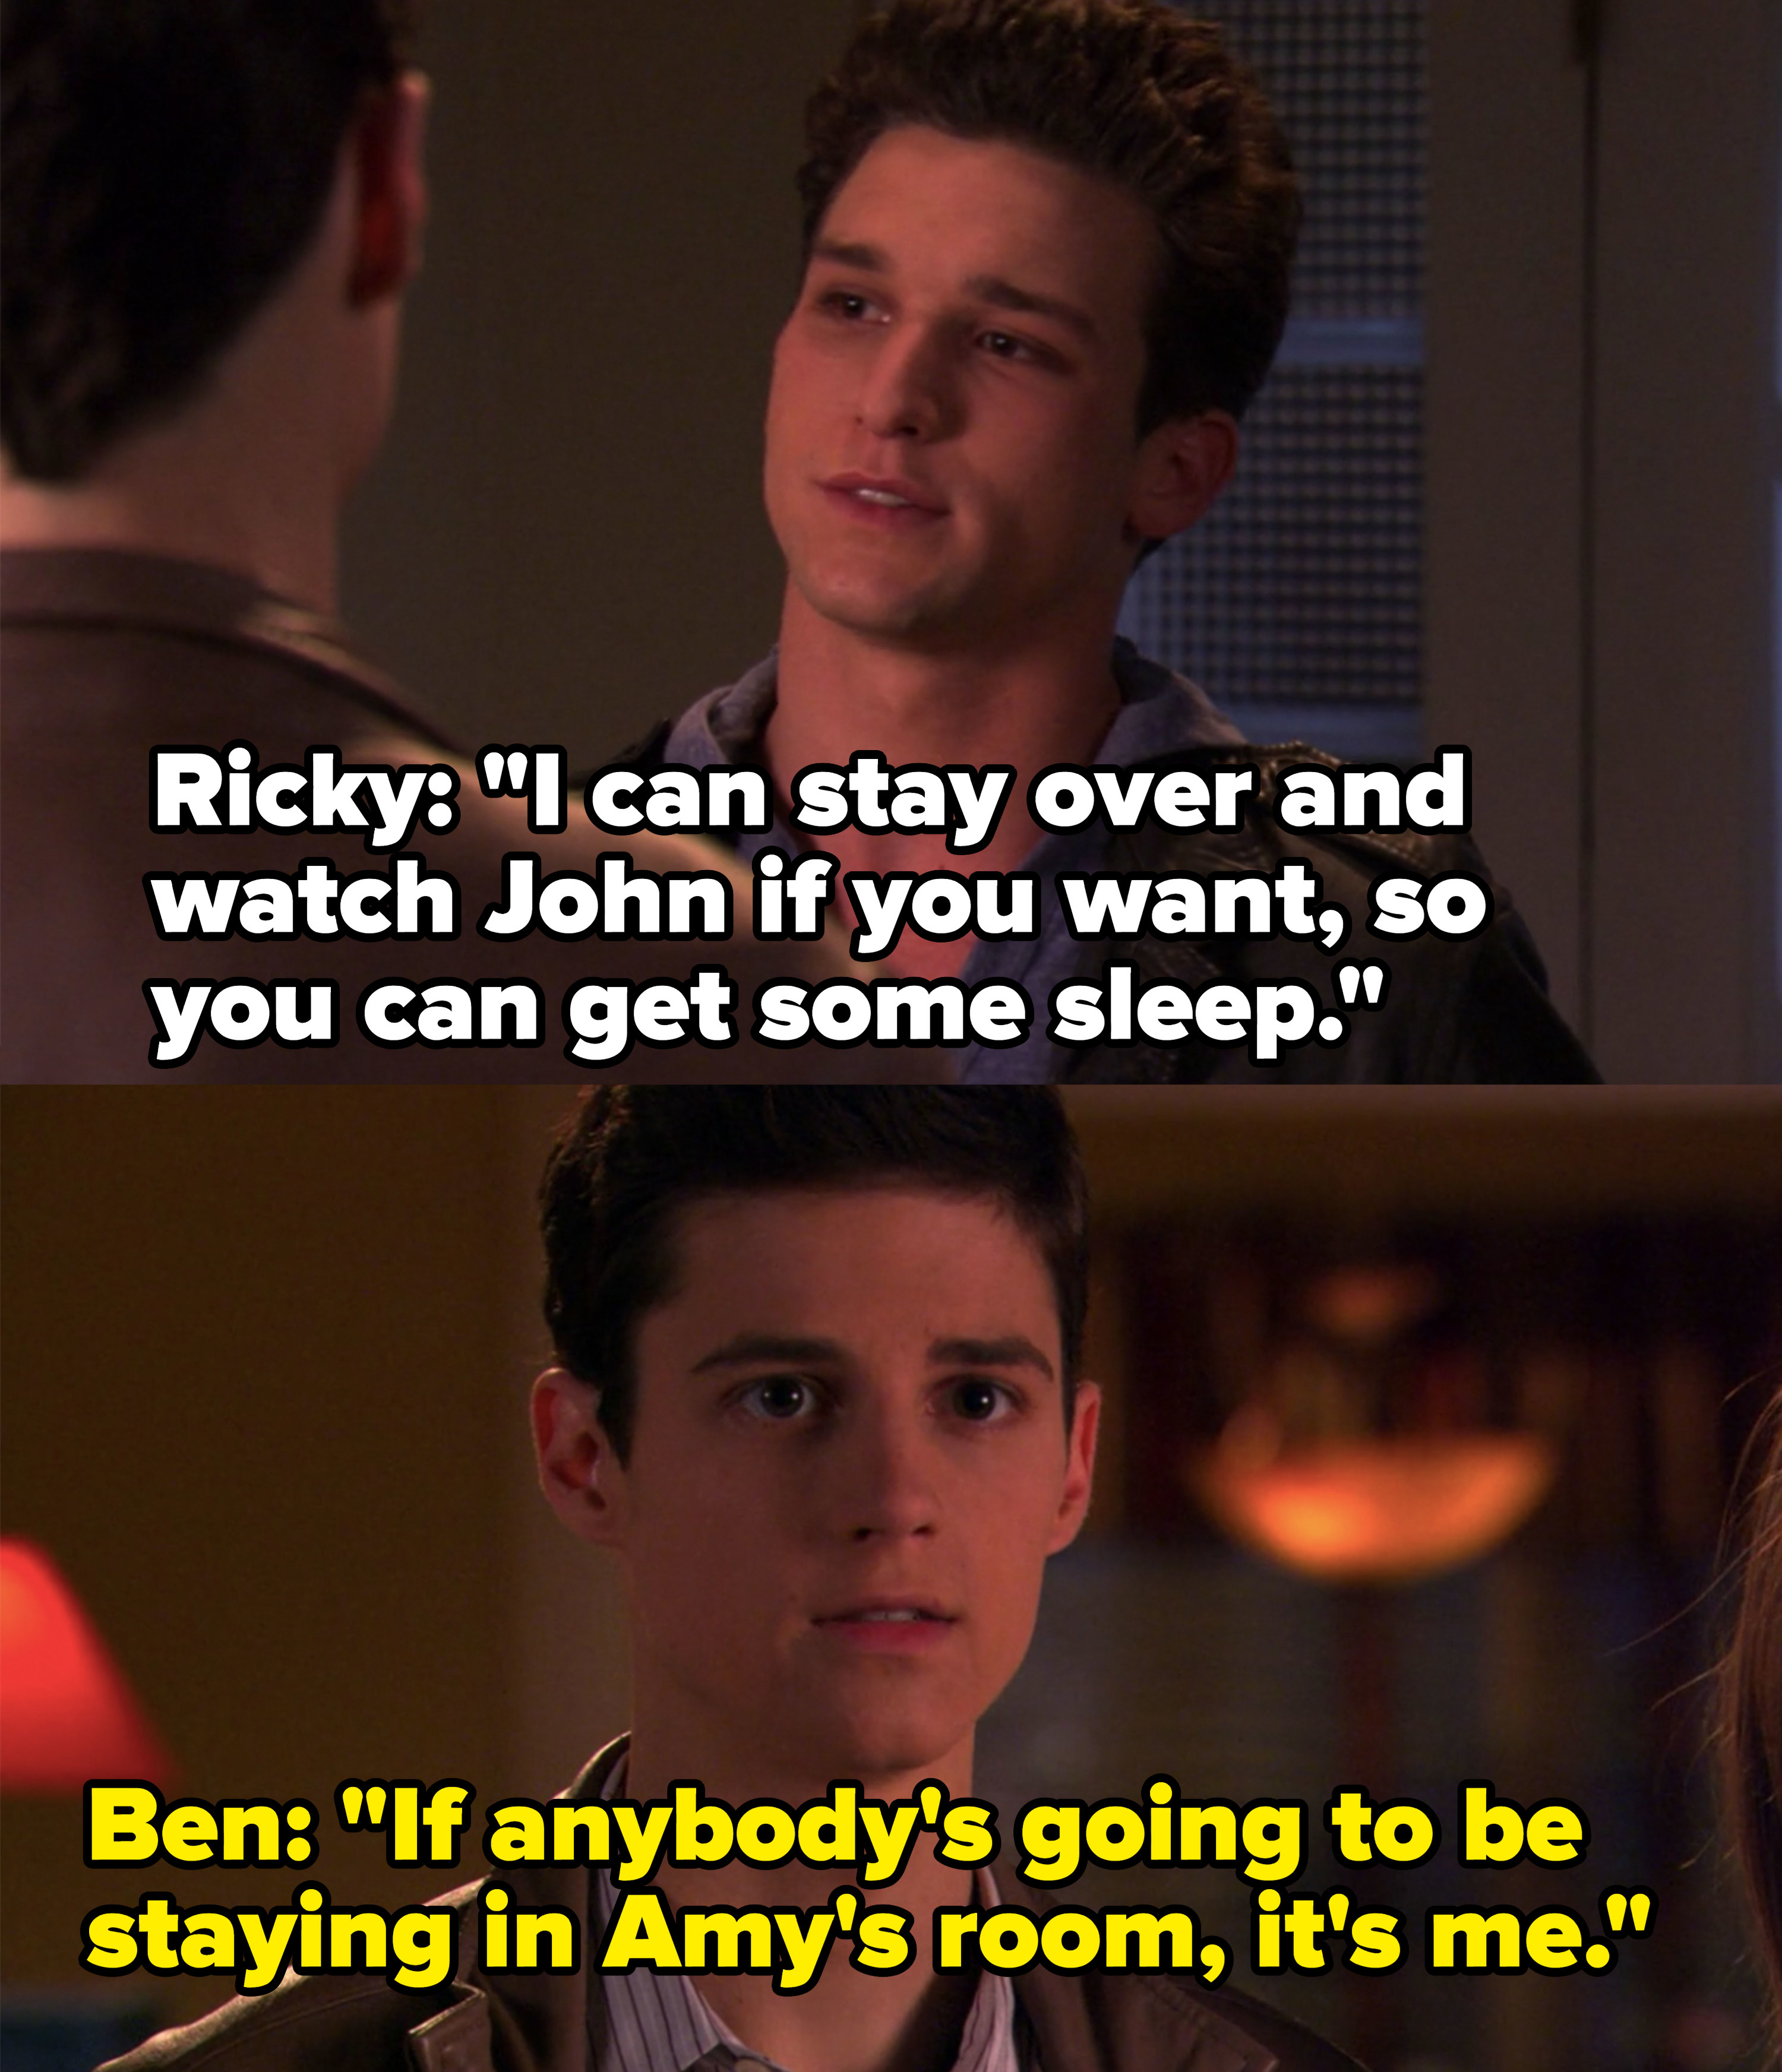 Ben tells Ricky he's the only one who will be staying in Amy's room